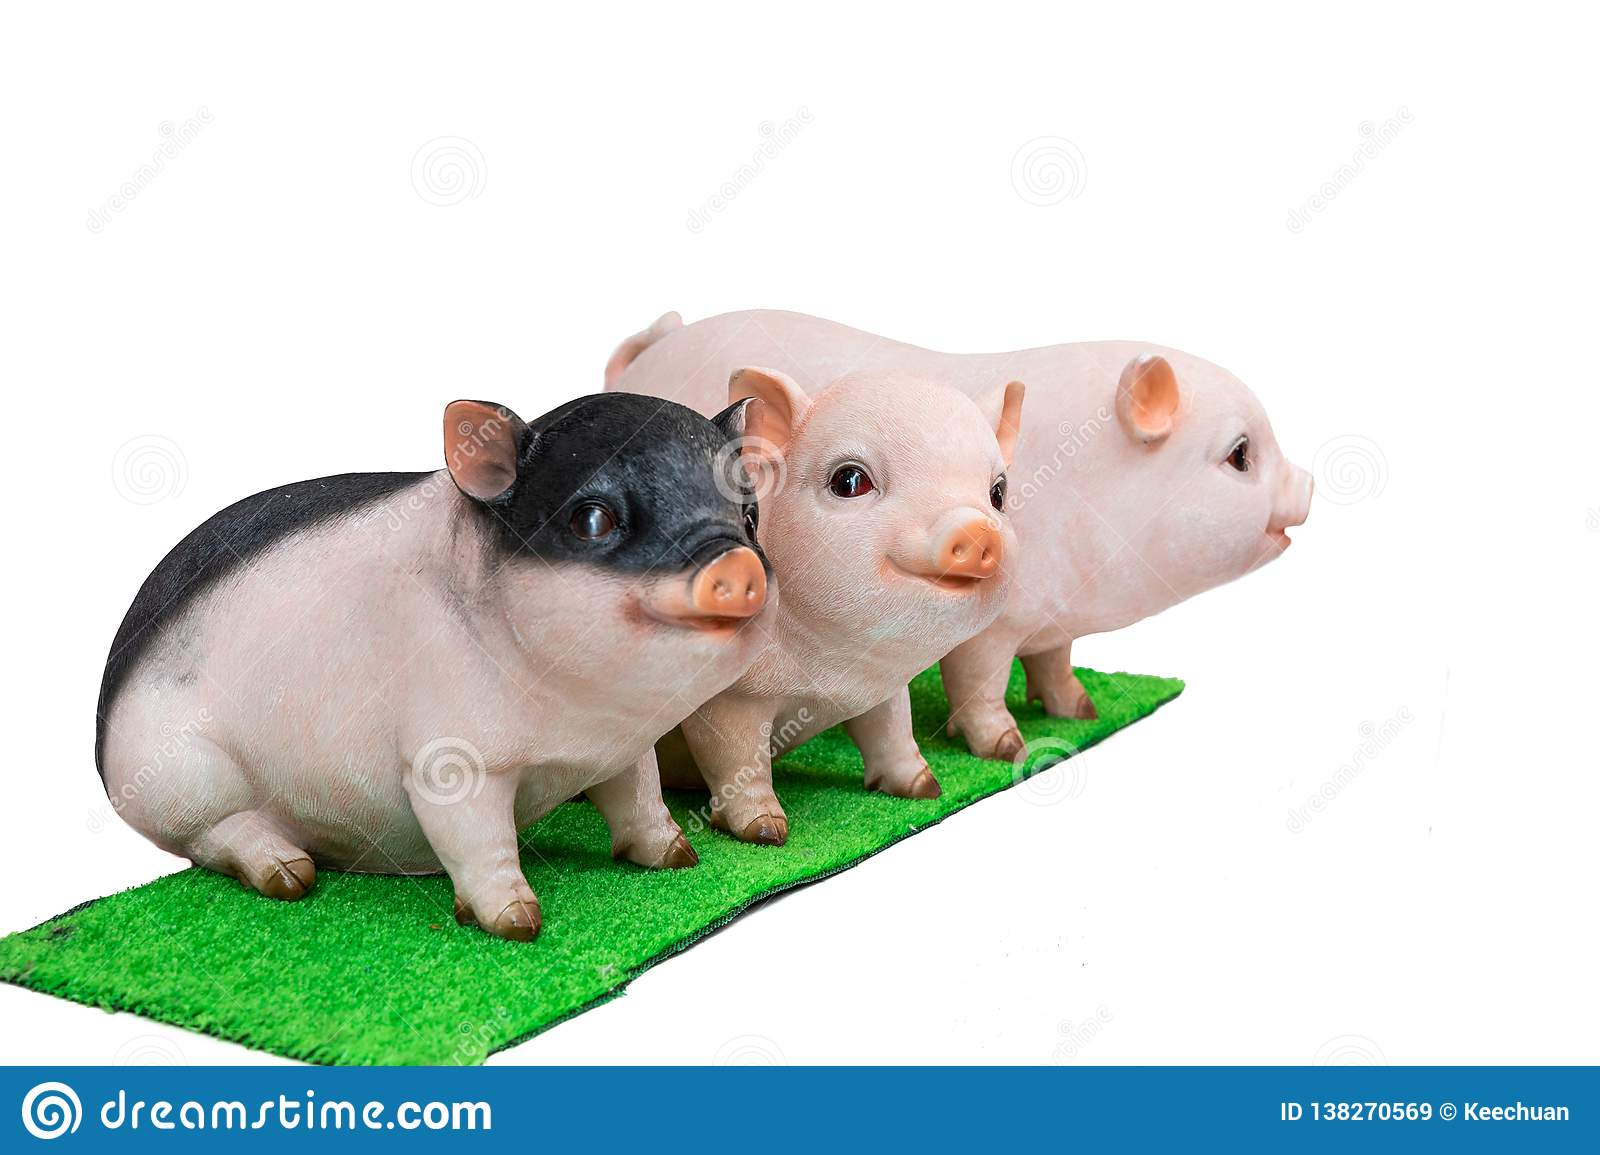 Pig boar in white background, 2019 Chinese New Year zodiac